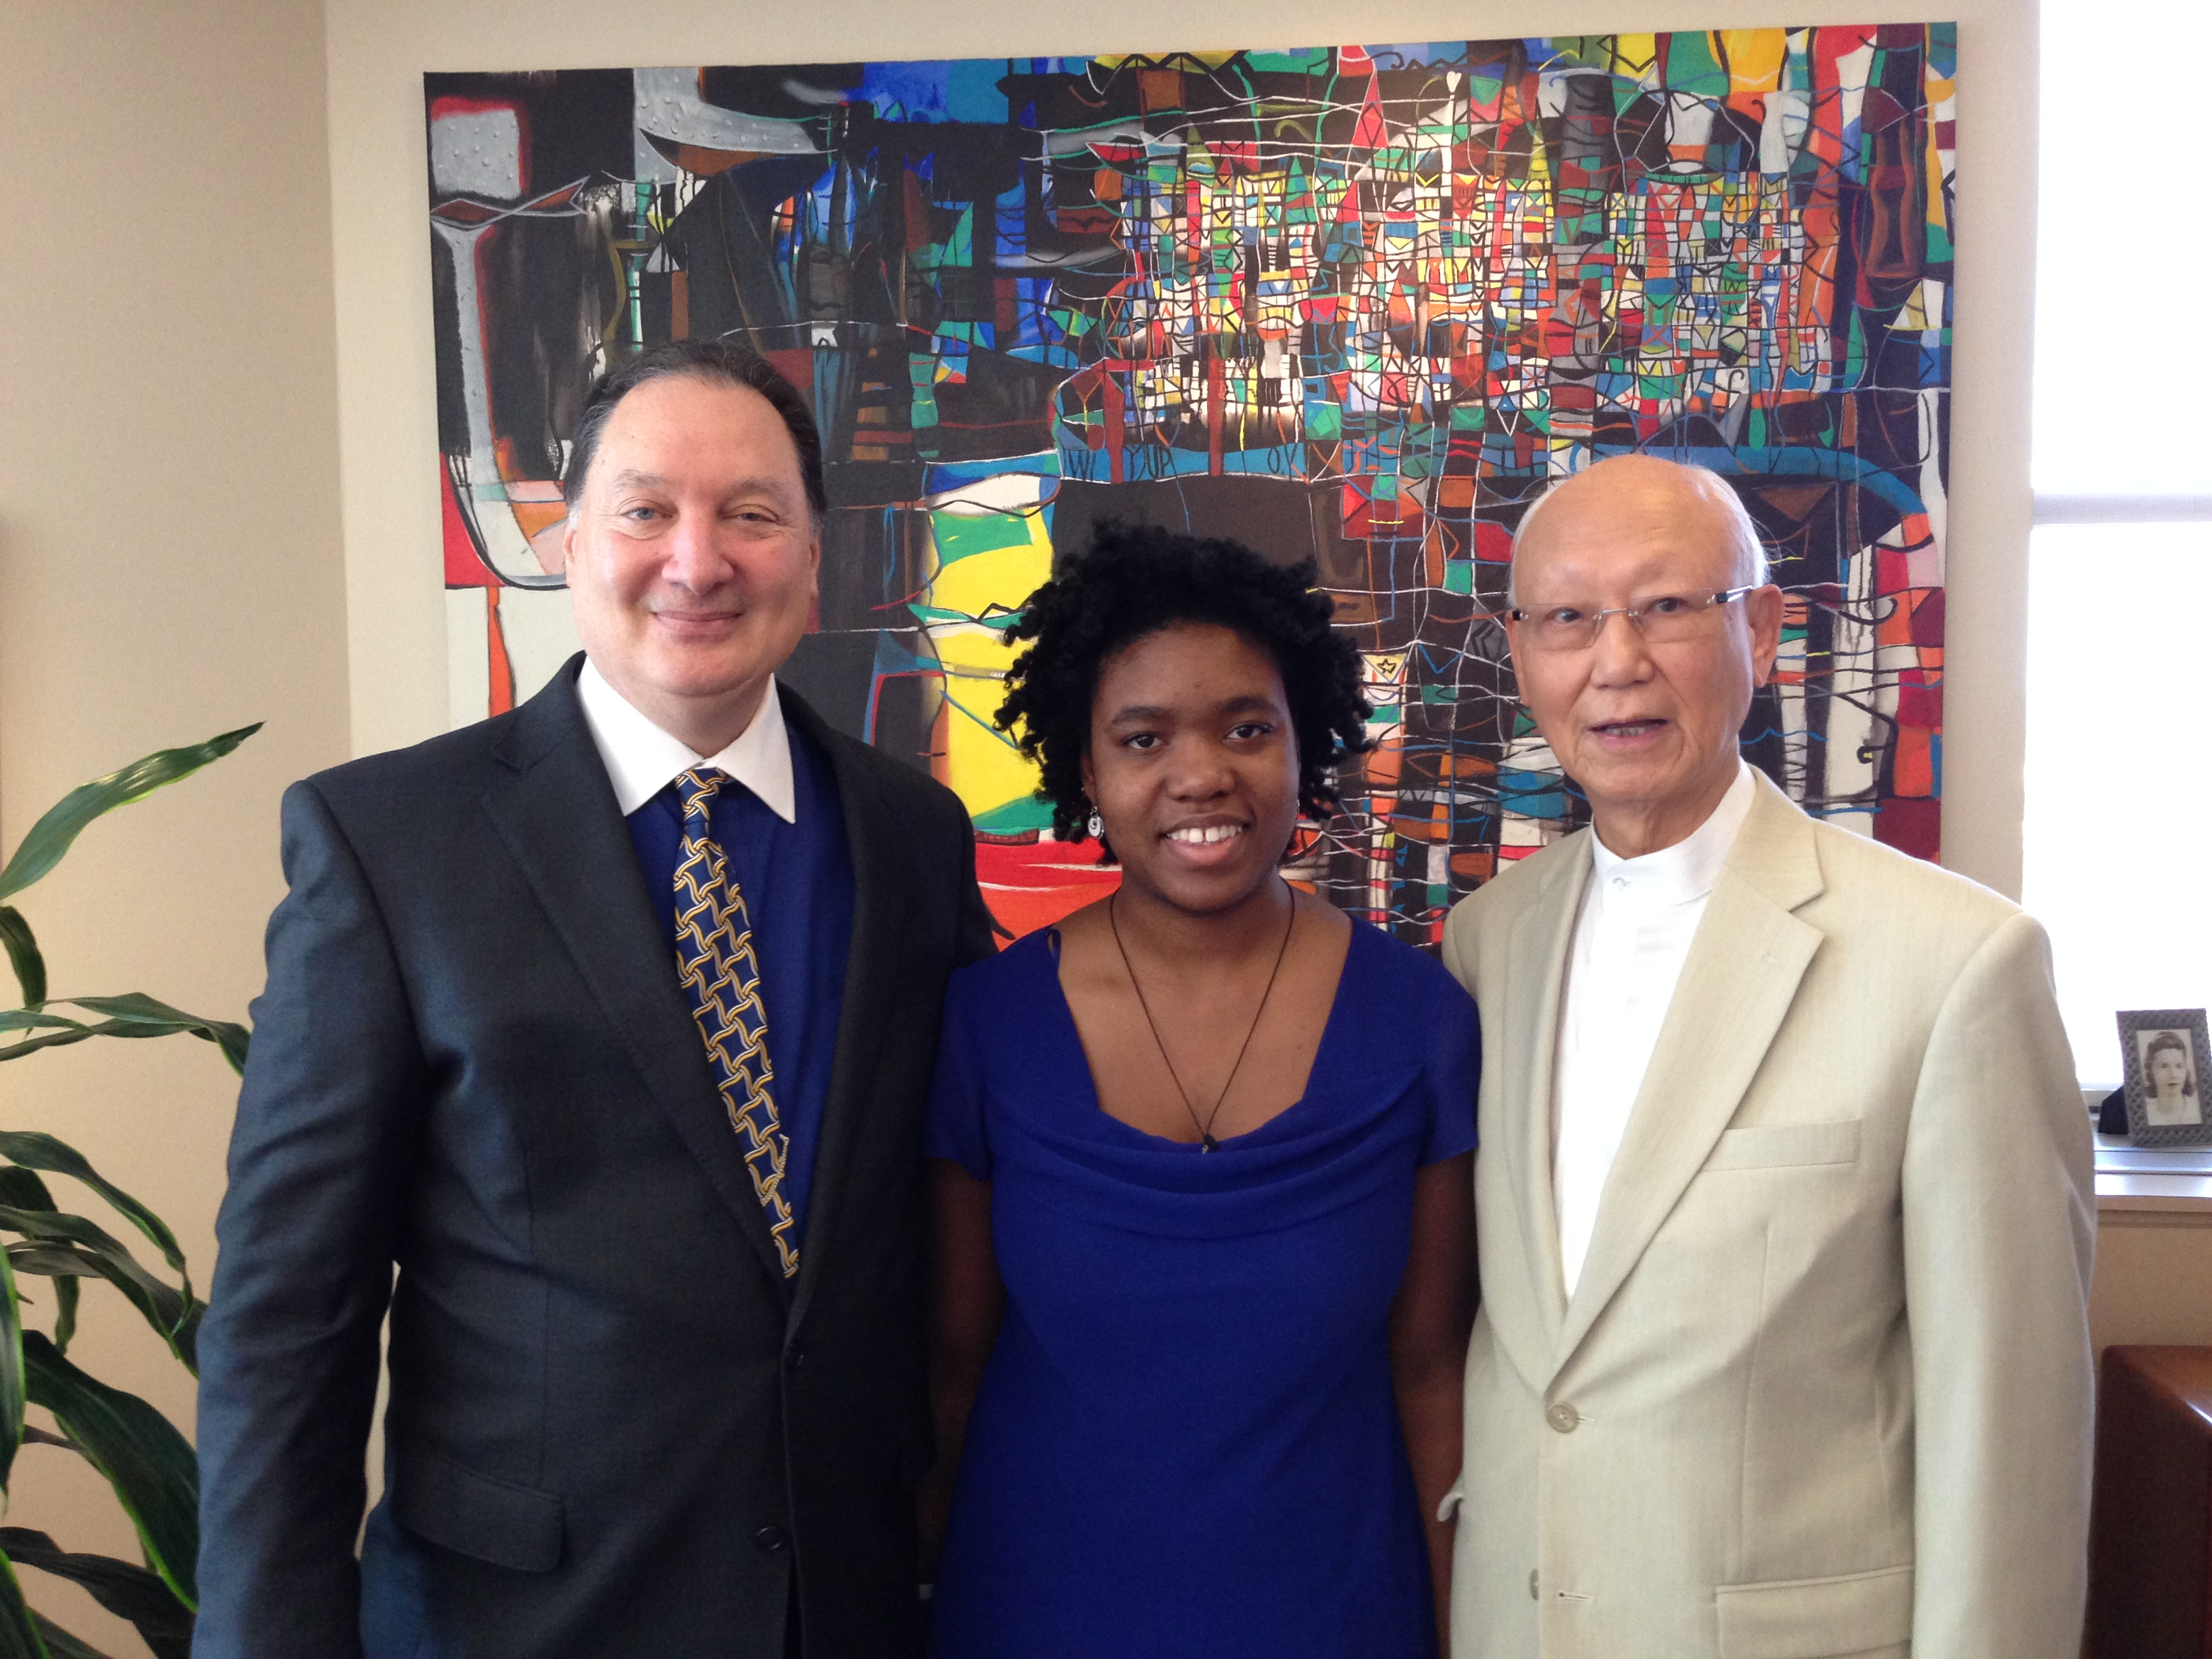 Royale Nicholson, Cleveland Foundation CEO Ron Richard, Chairman of CI Trustee Council Dr. Anthony Yen